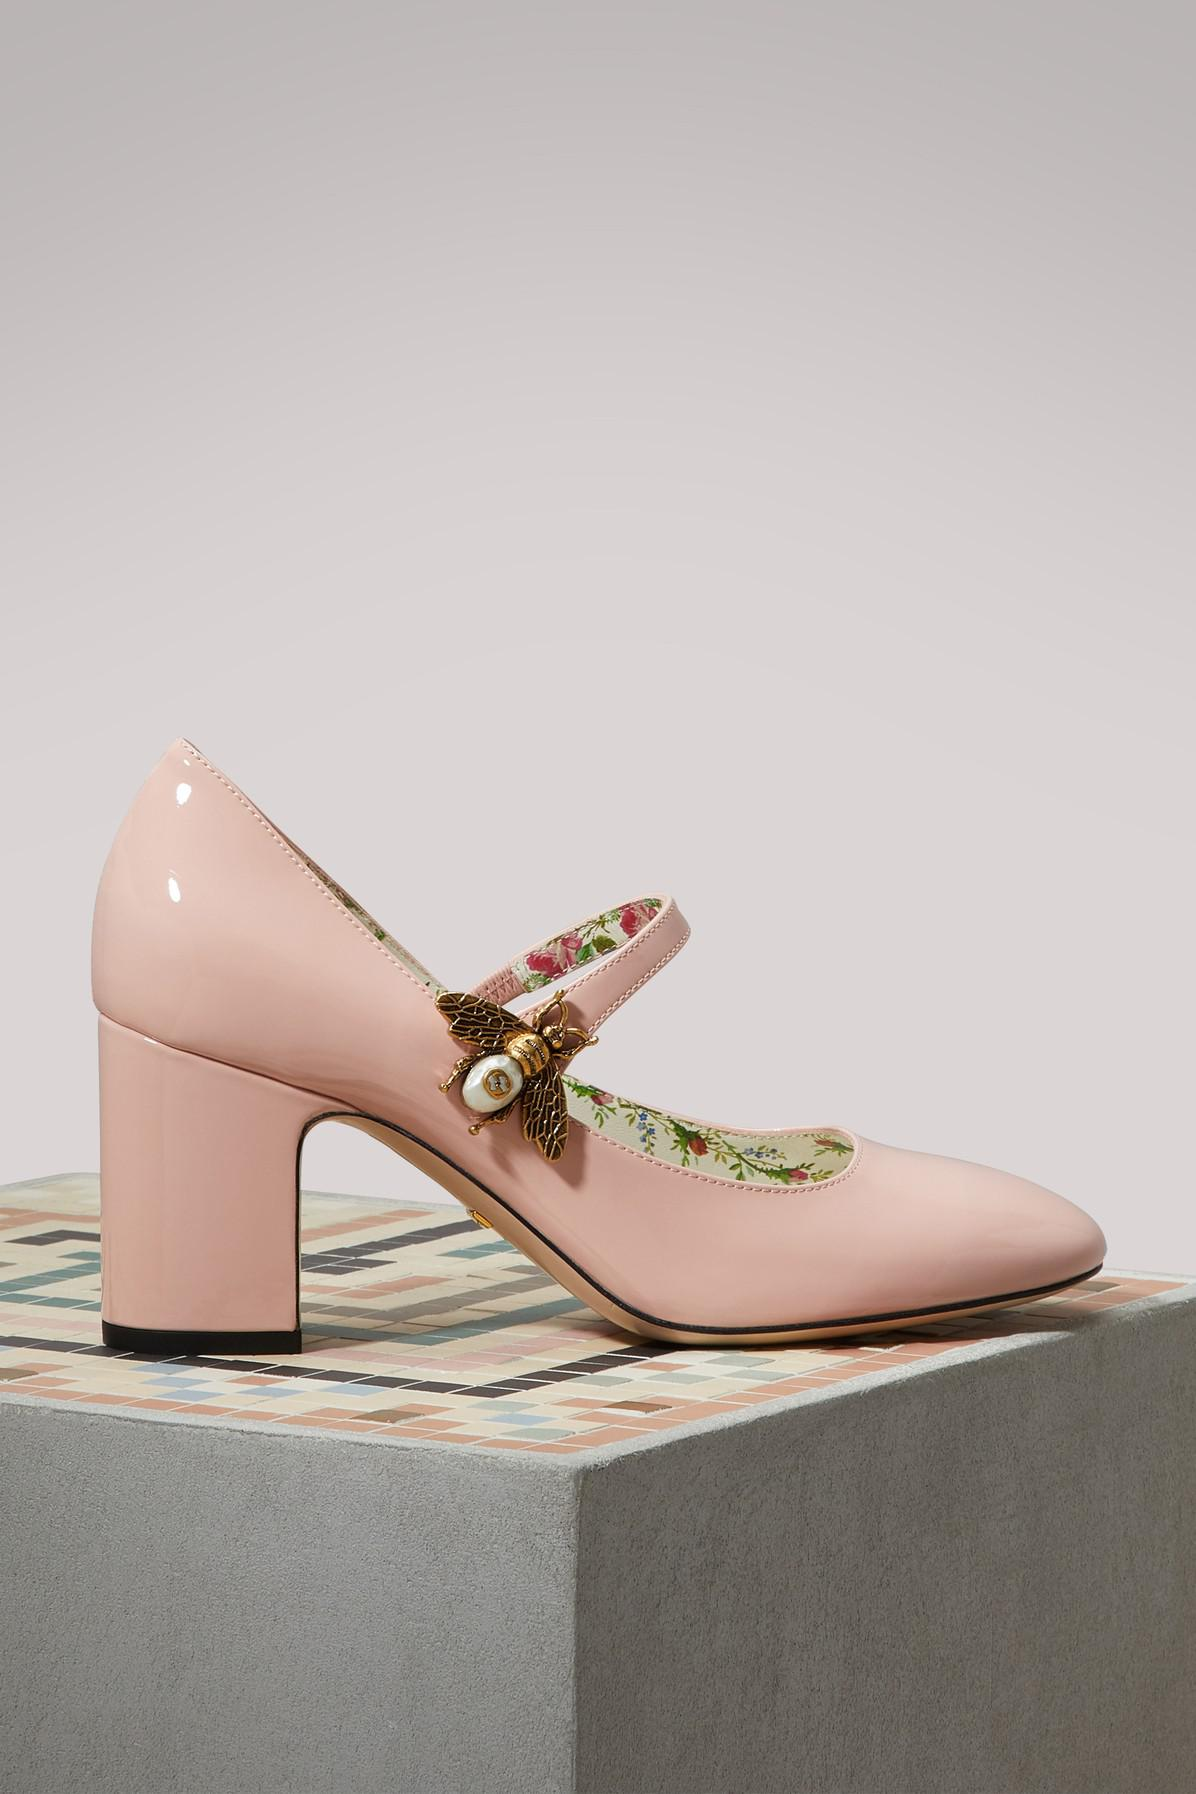 d5b3f47c71cd Gucci. Women s Pink Patent Leather Court Shoes With Bee